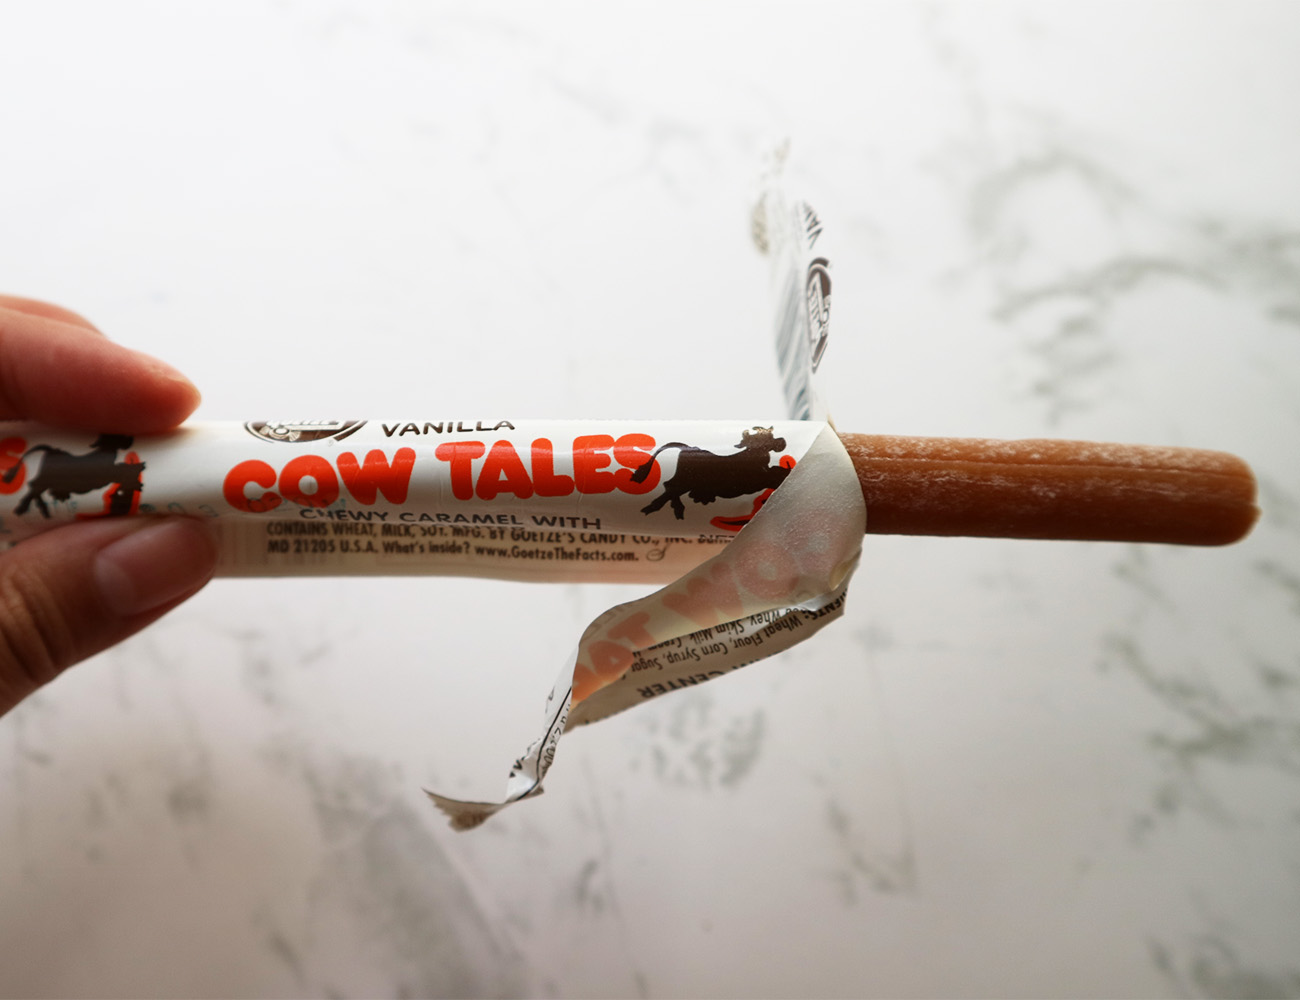 Cow Tales the wrapper is half way down from the sweet